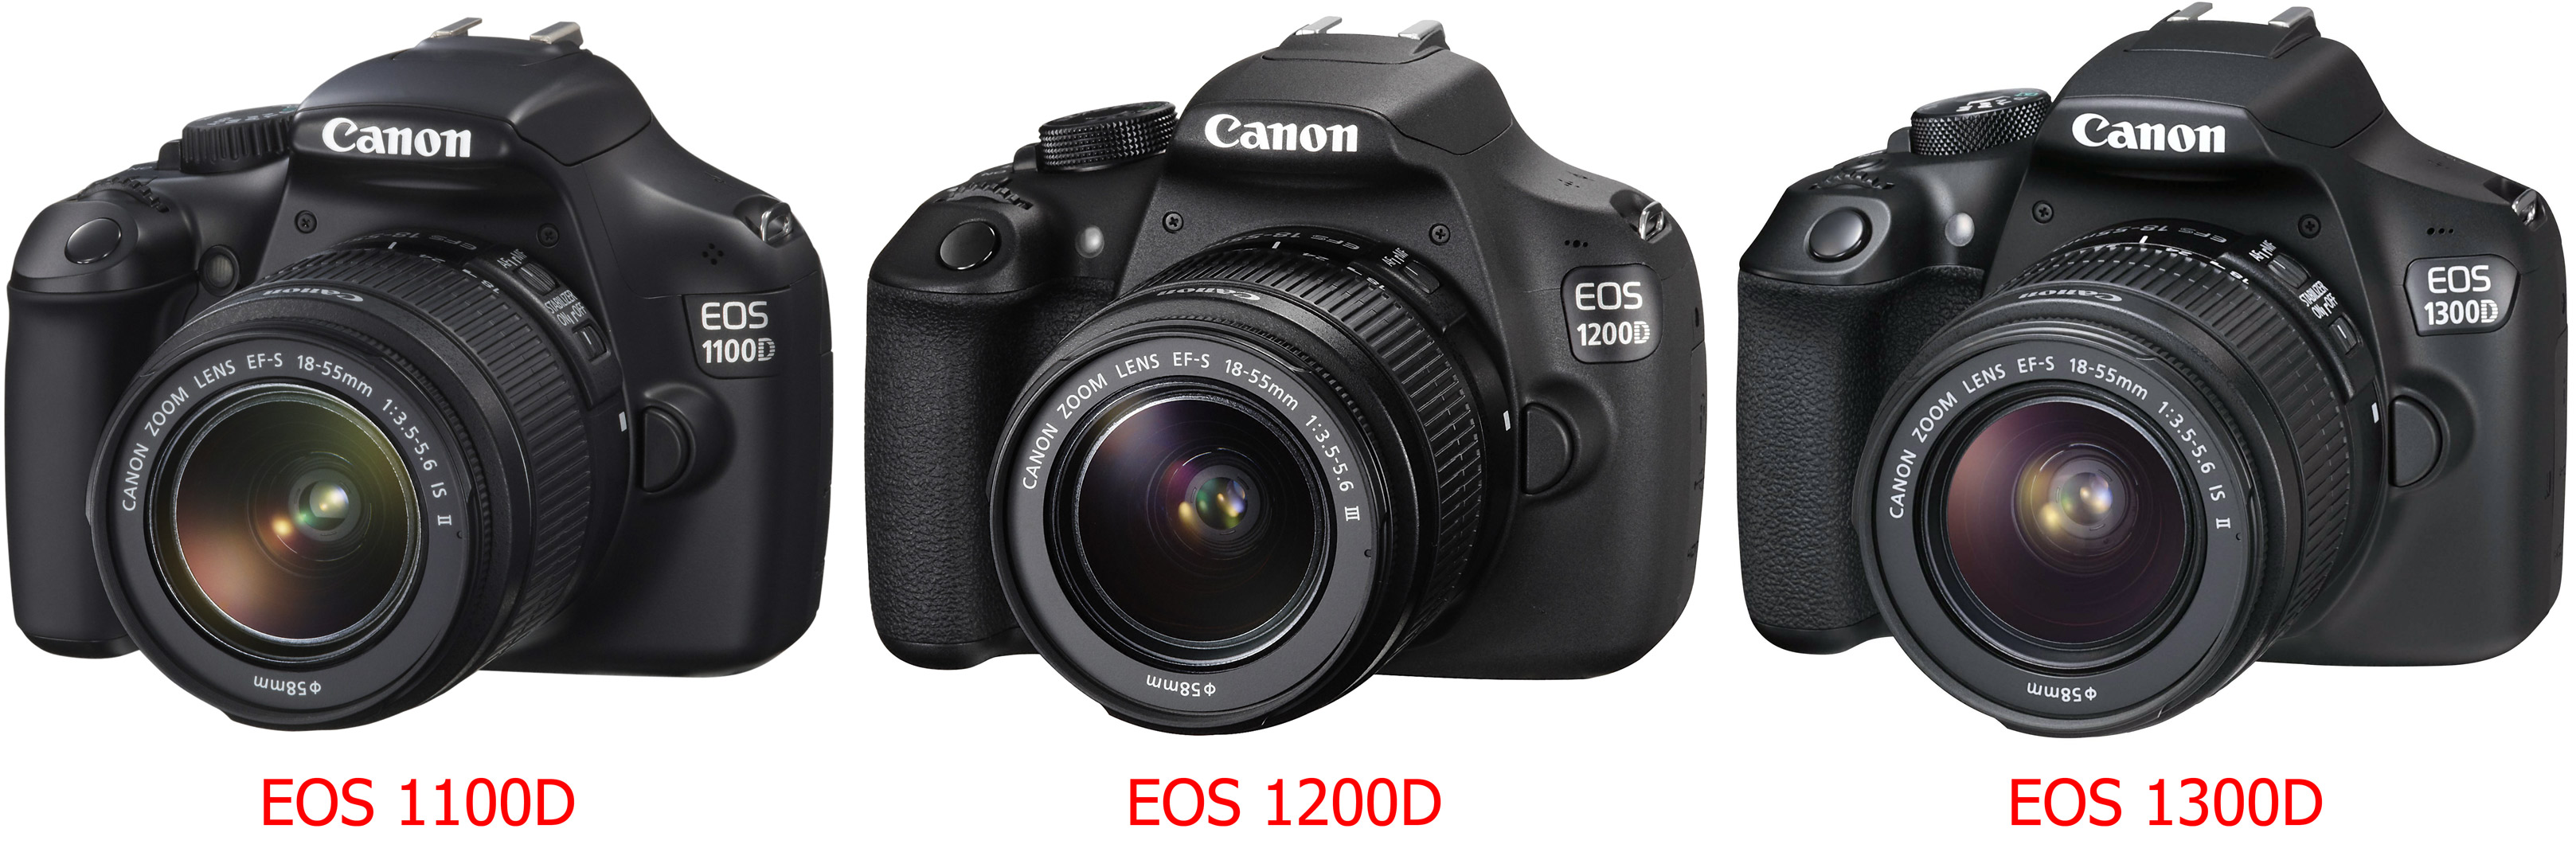 Canon EOS 1300D evolution cyfrovychok